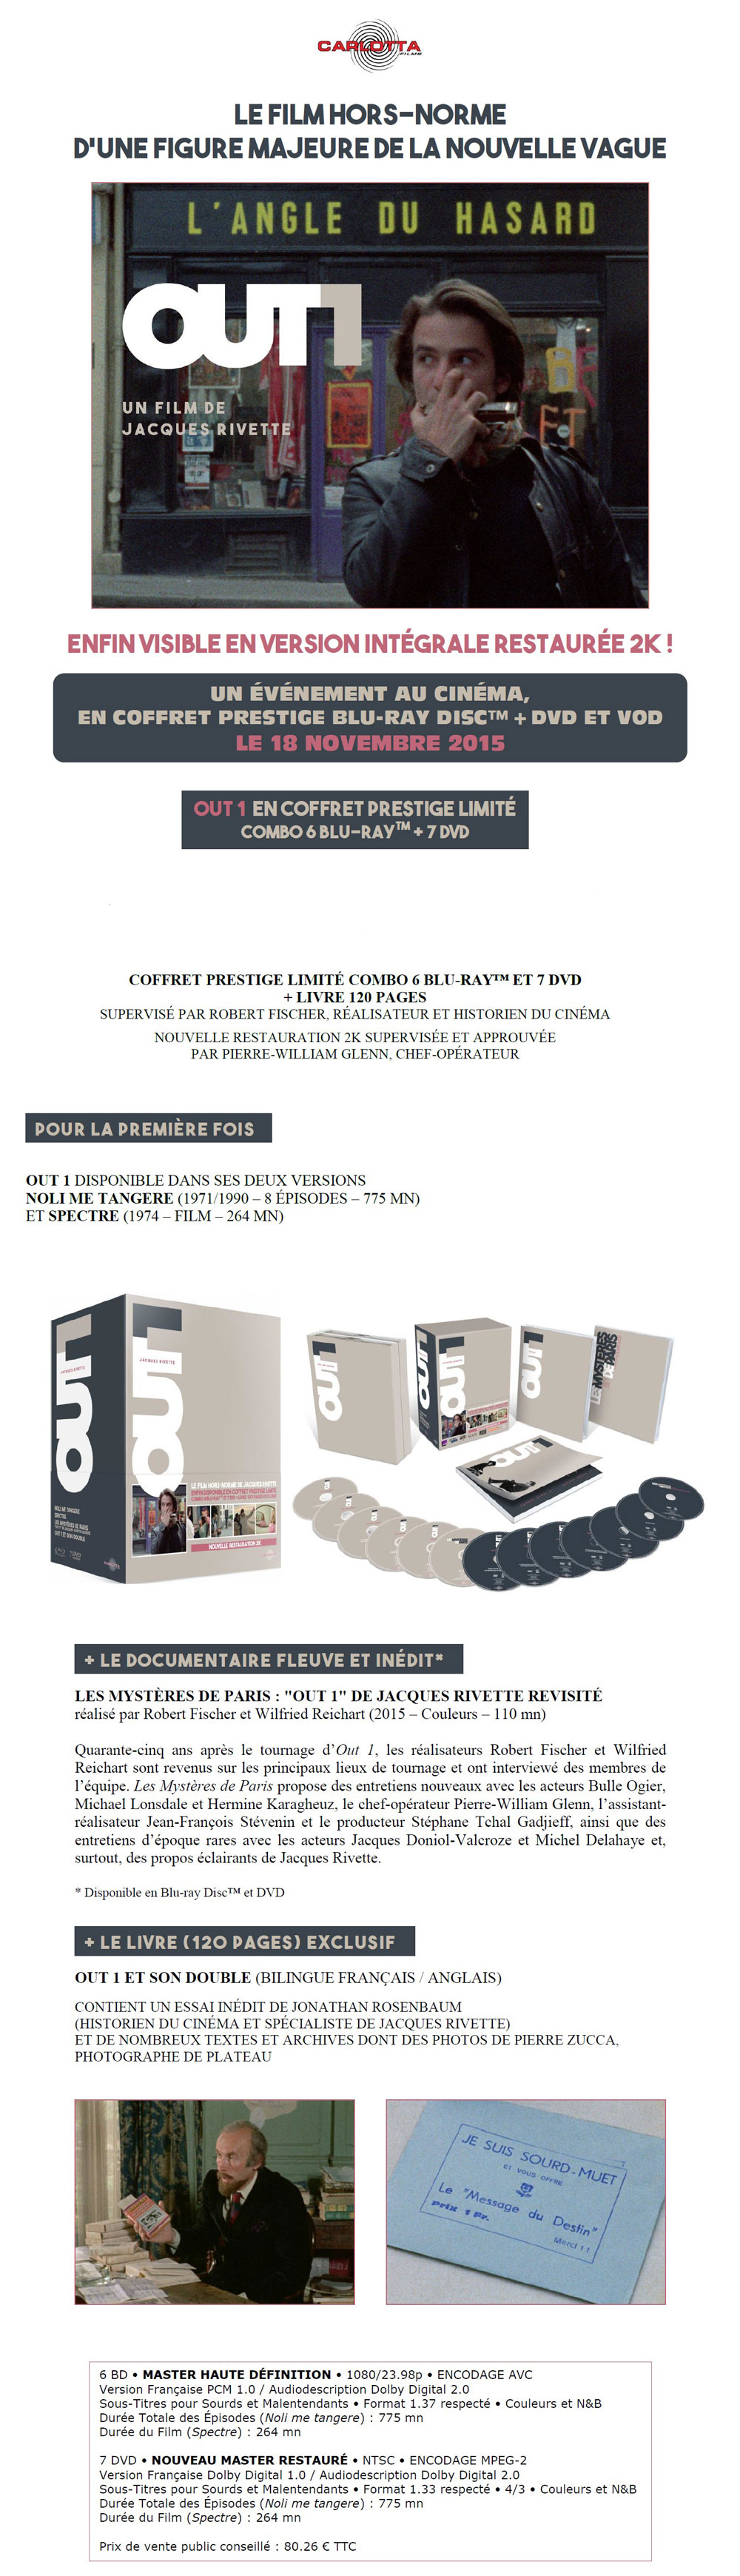 Out-1 - Annonce Presse Coffret Blu-ray